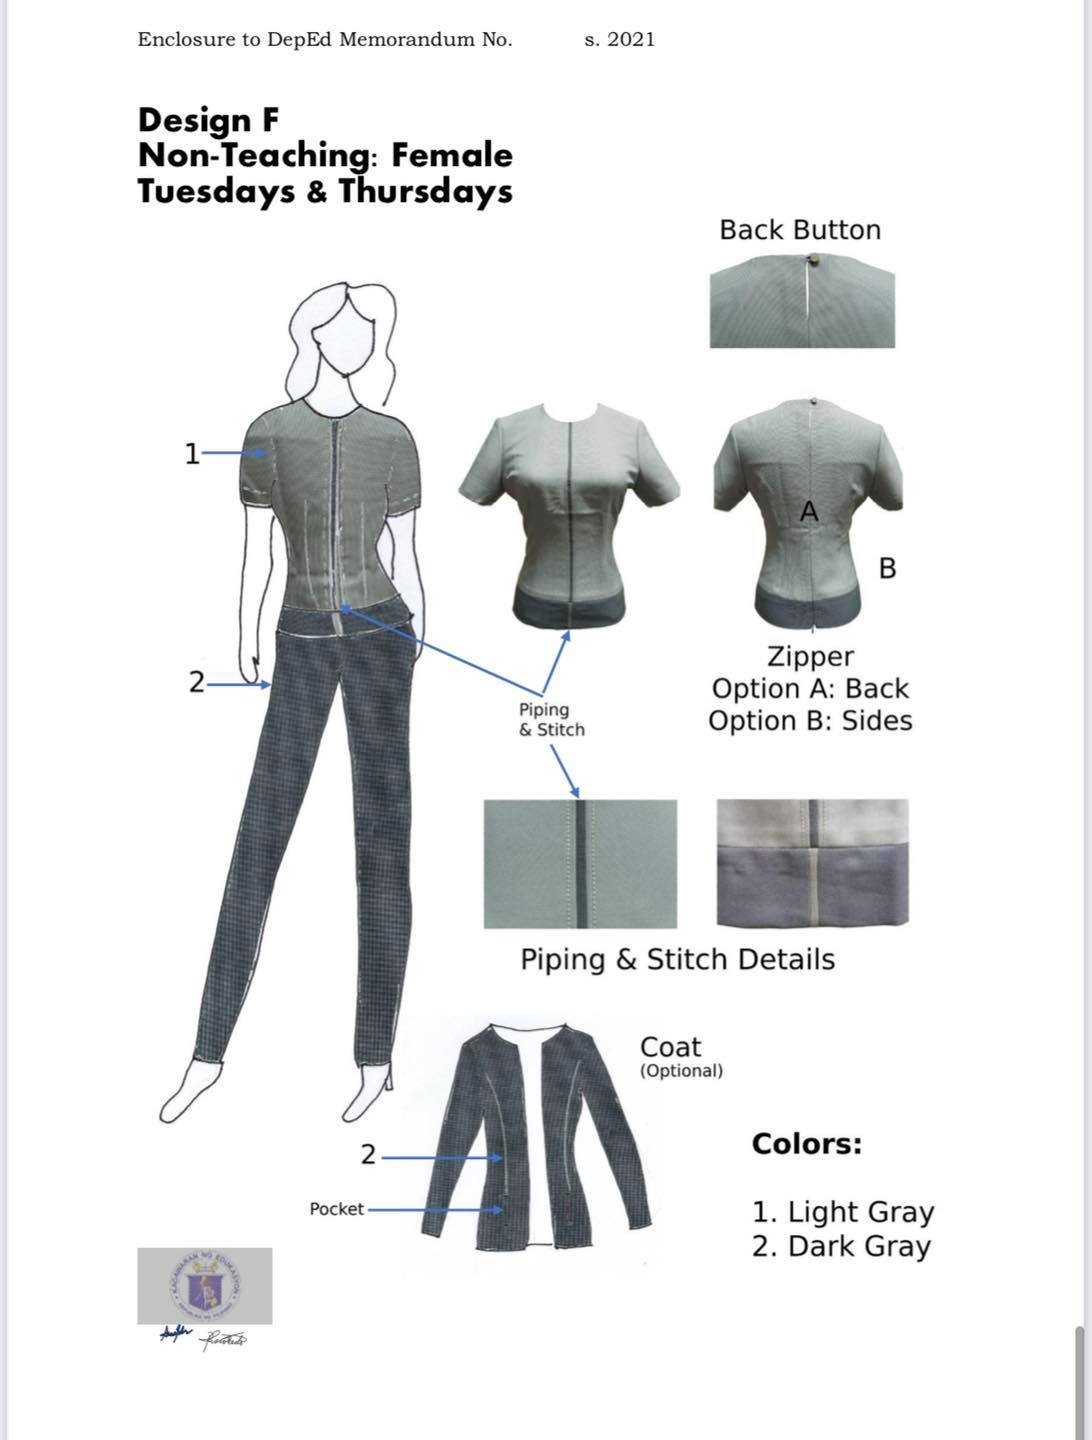 DepEd National Uniform Design F for Female Non-Teaching Personnel (Tuesdays and Thursdays)